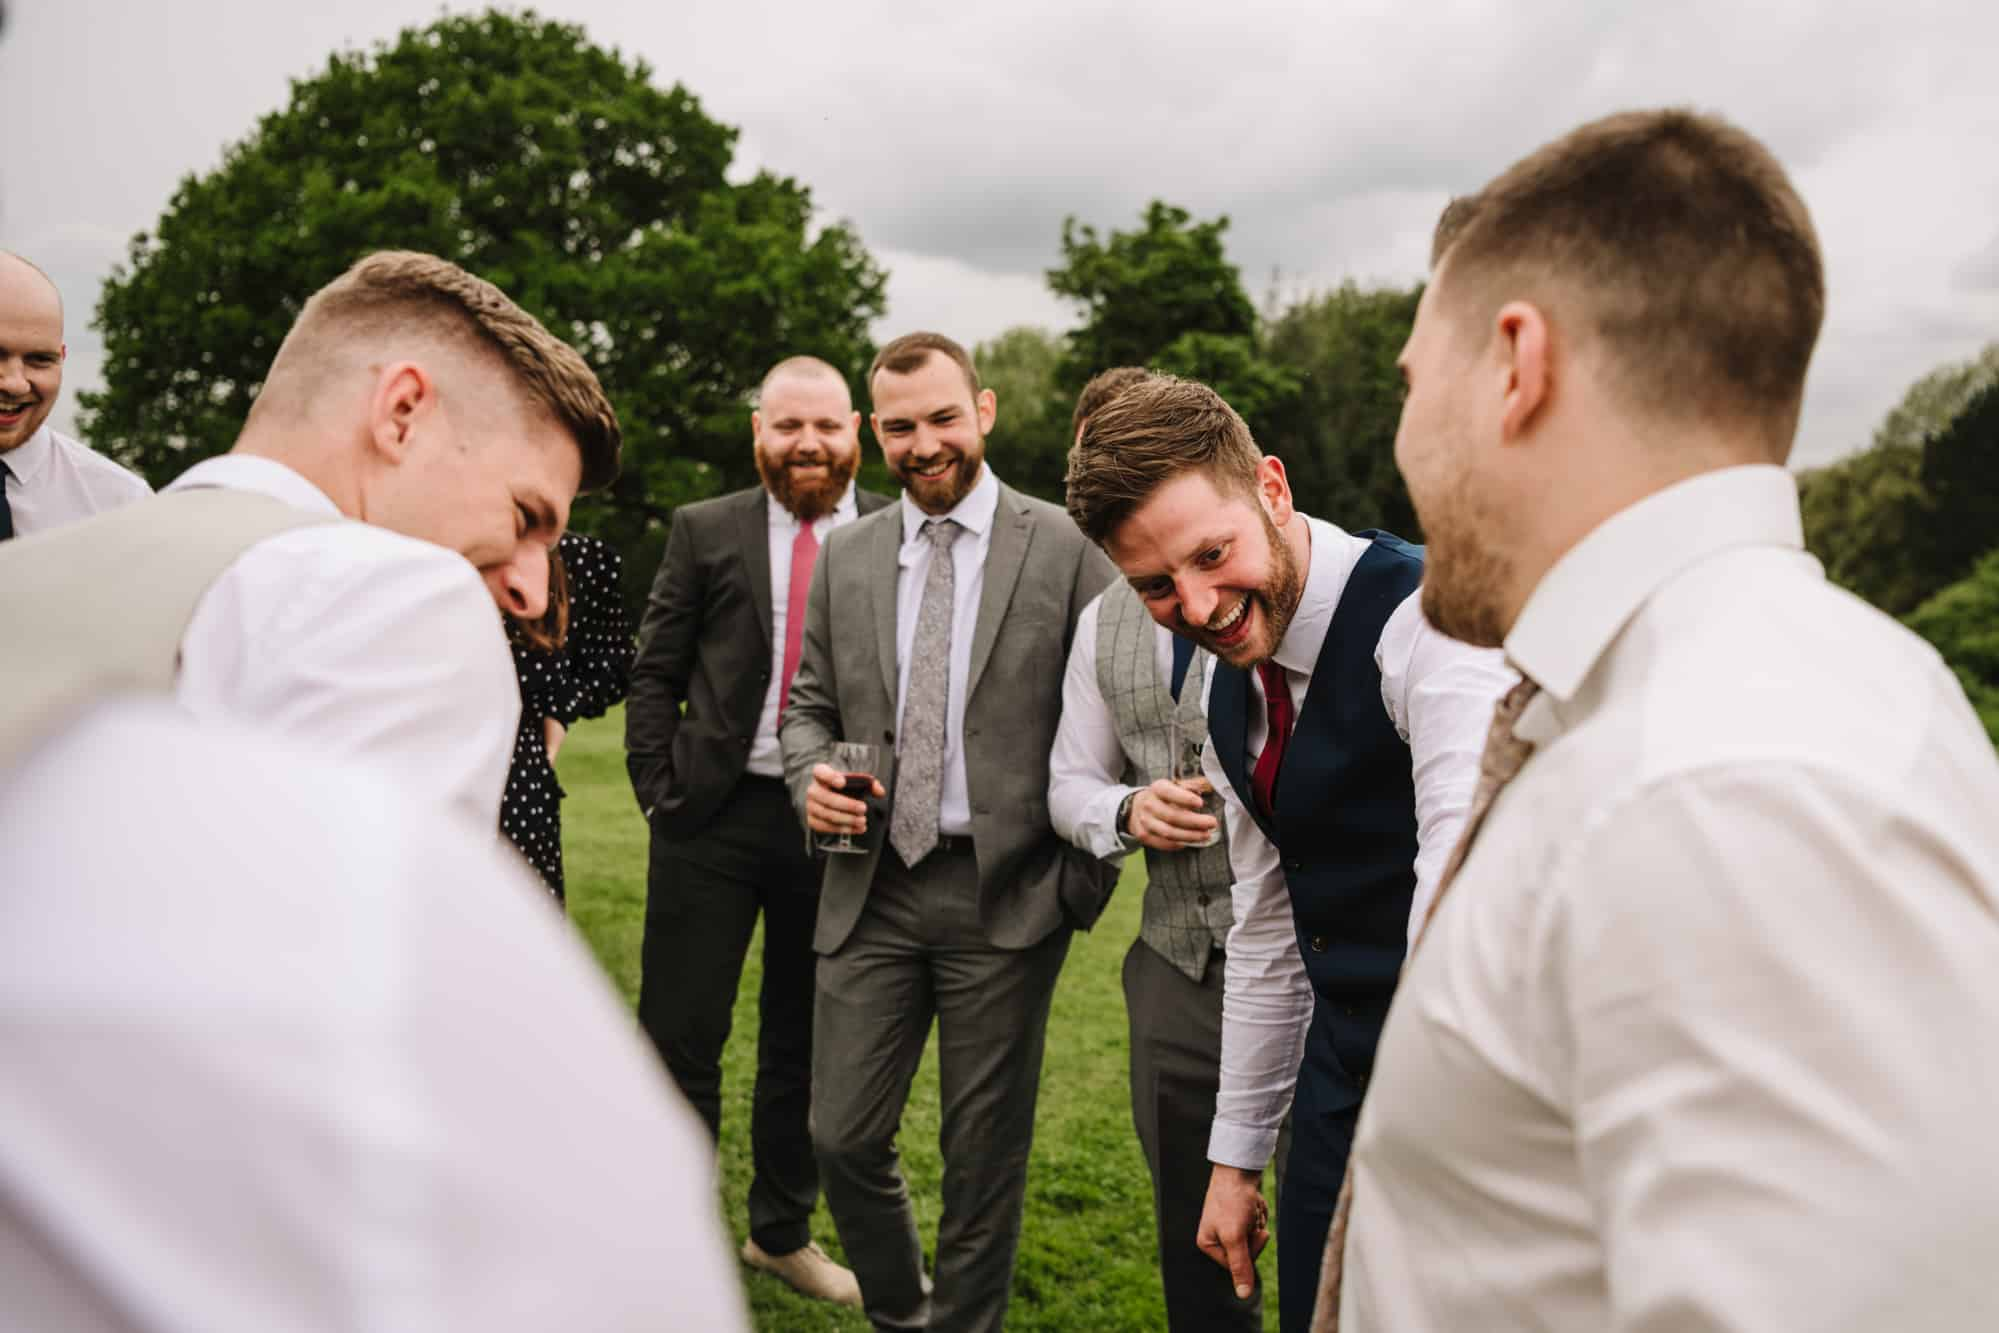 guests laughing in the grounds of Hill Bank Farm